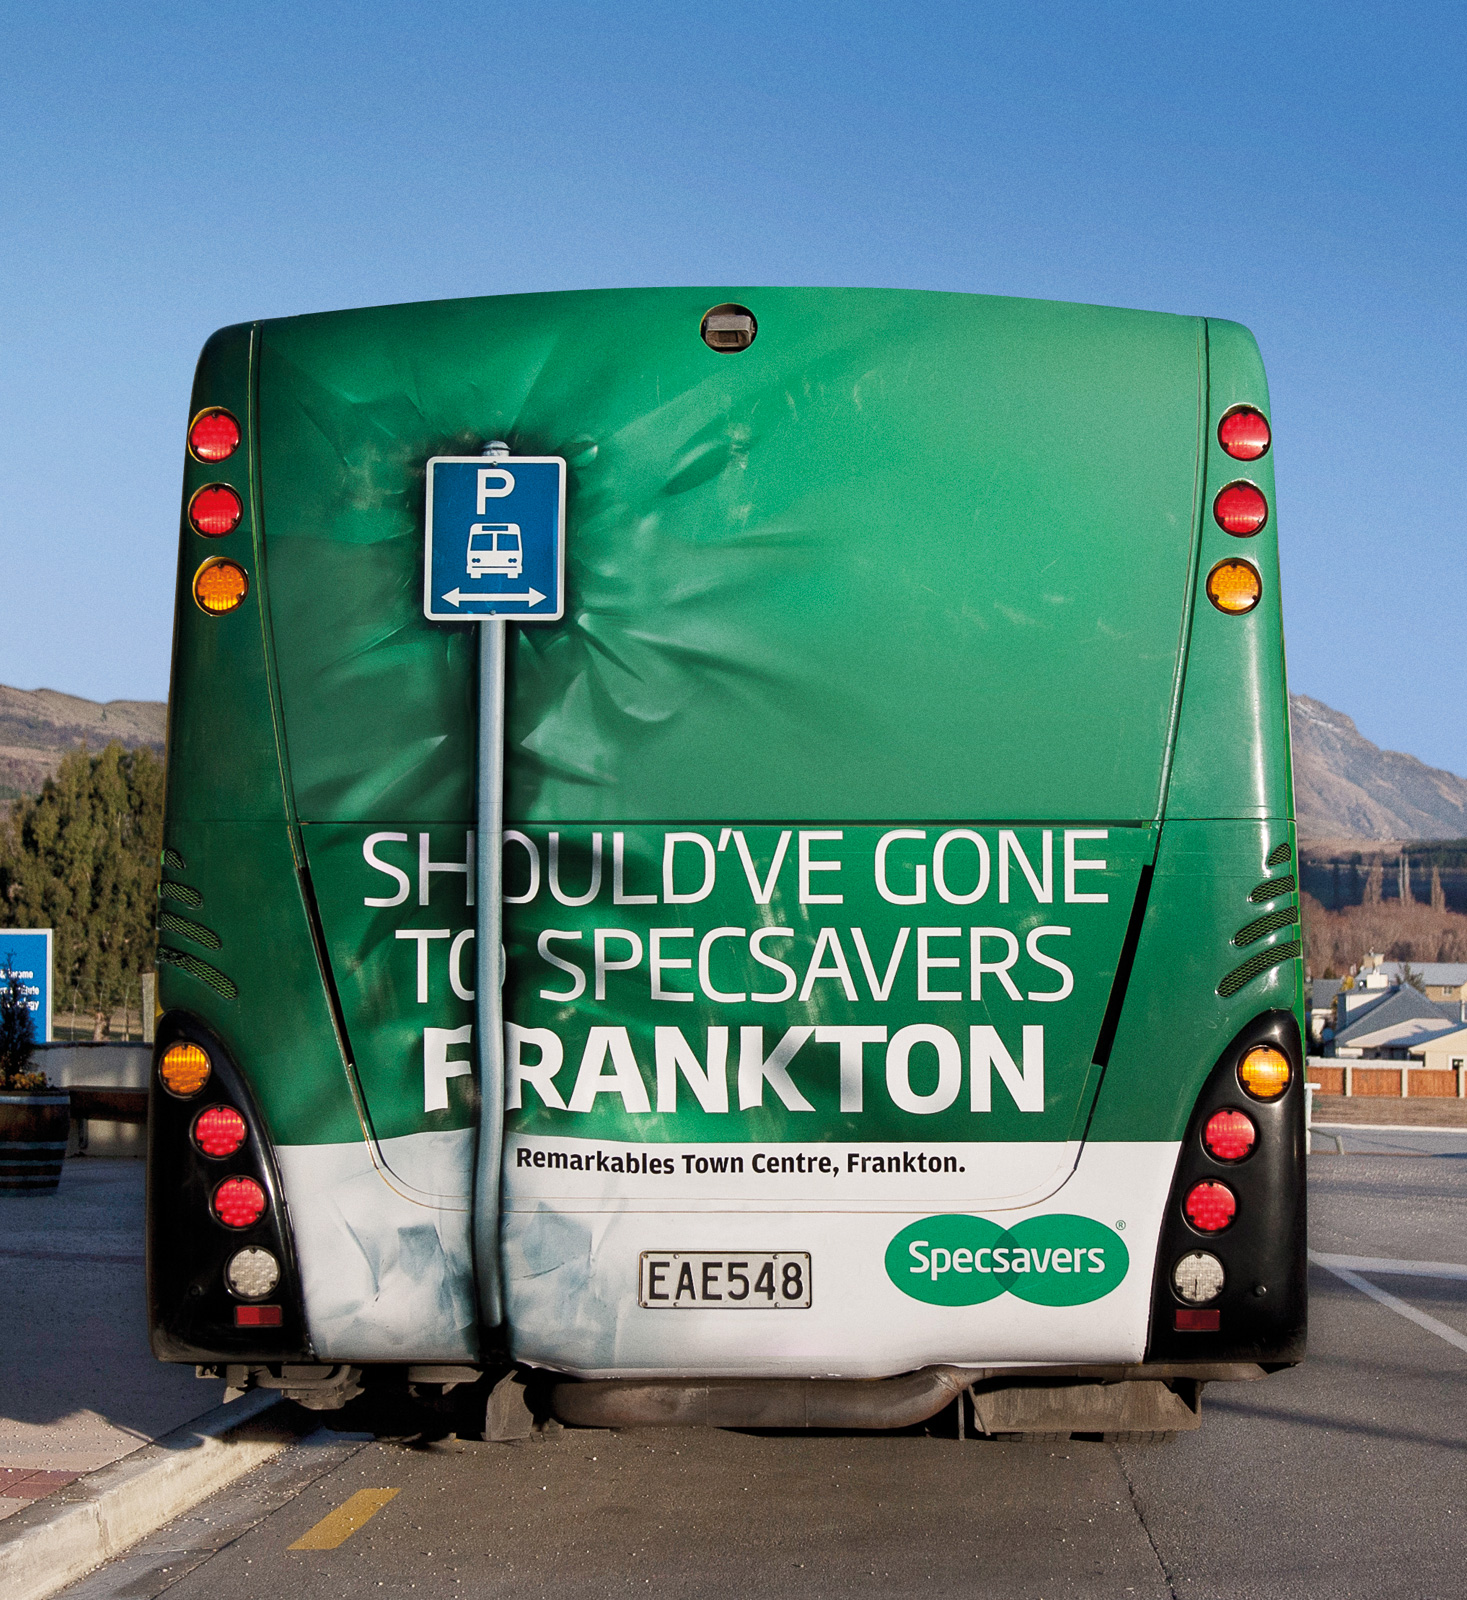 http://www.ibelieveinadv.com/wp-content/uploads/2011/06/Specsavers_Bus_Back_Crash_ibelieveinadv.jpg